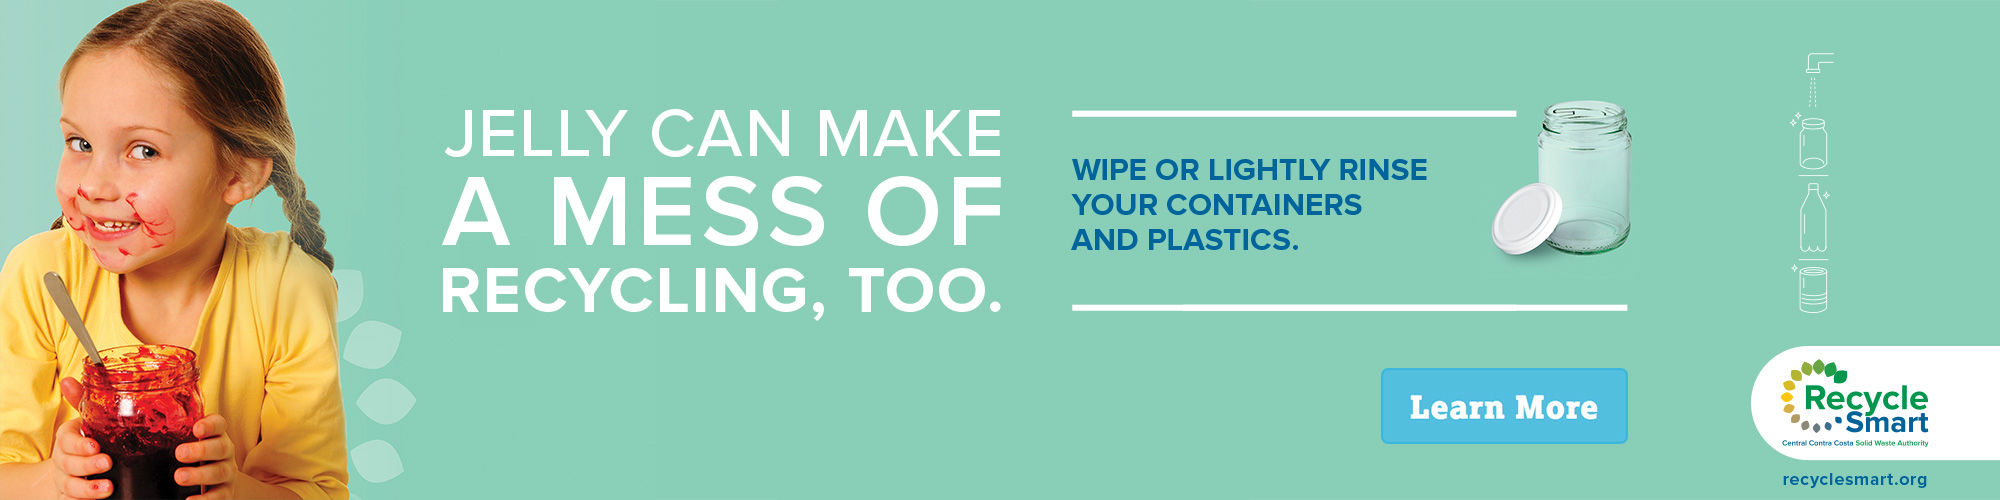 jelly can make a mess of recycling too, wipe or lightly rinse your containers and plastics